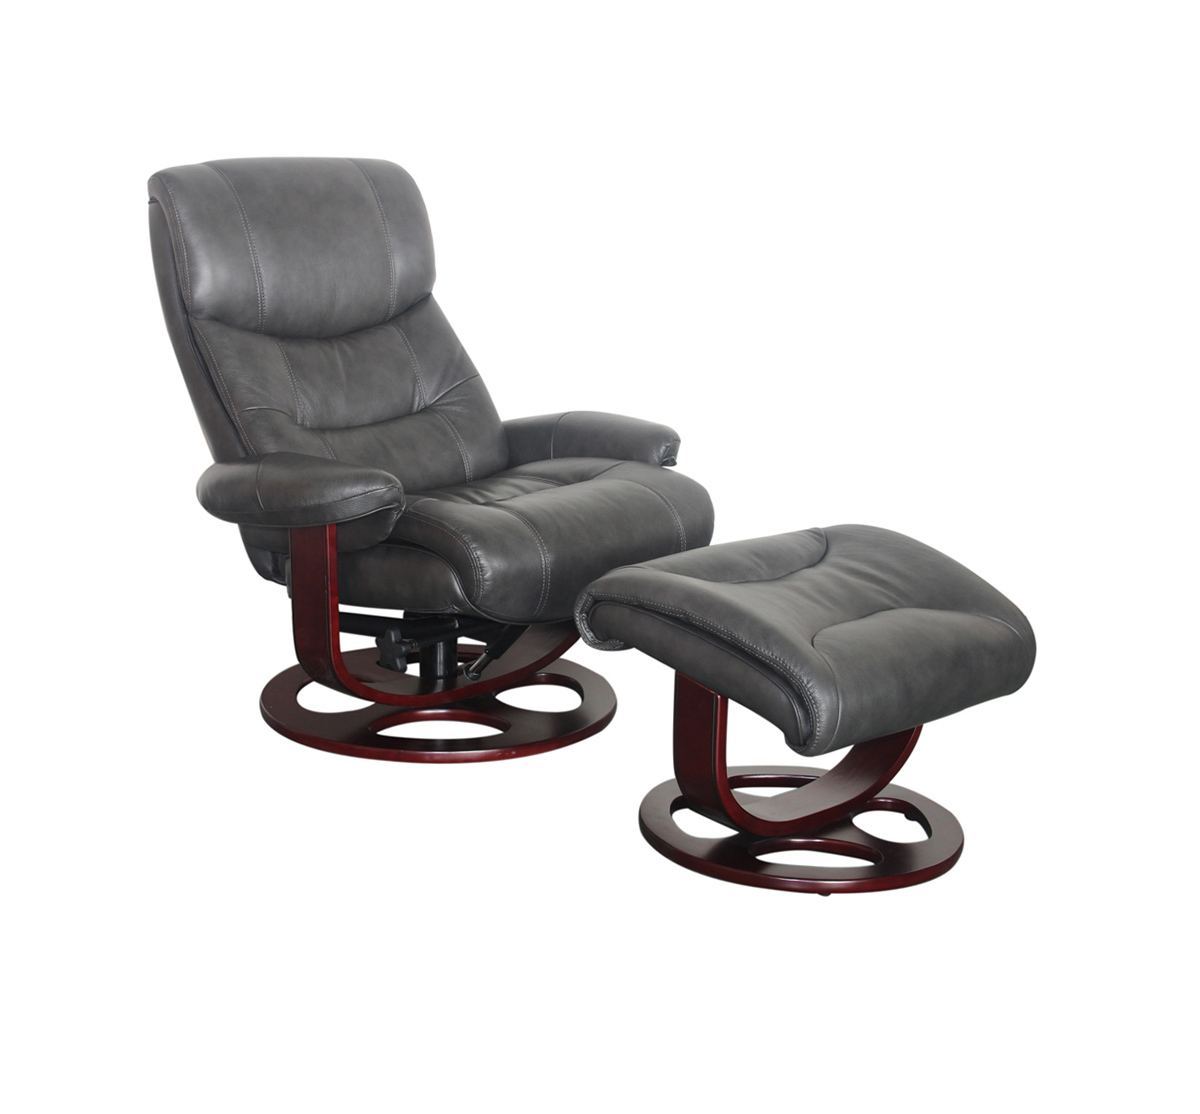 Tremendous Barcalounger Dawson Pedestal Recliner Chair And Ottoman Chelsea Graphite Leather Match Pdpeps Interior Chair Design Pdpepsorg